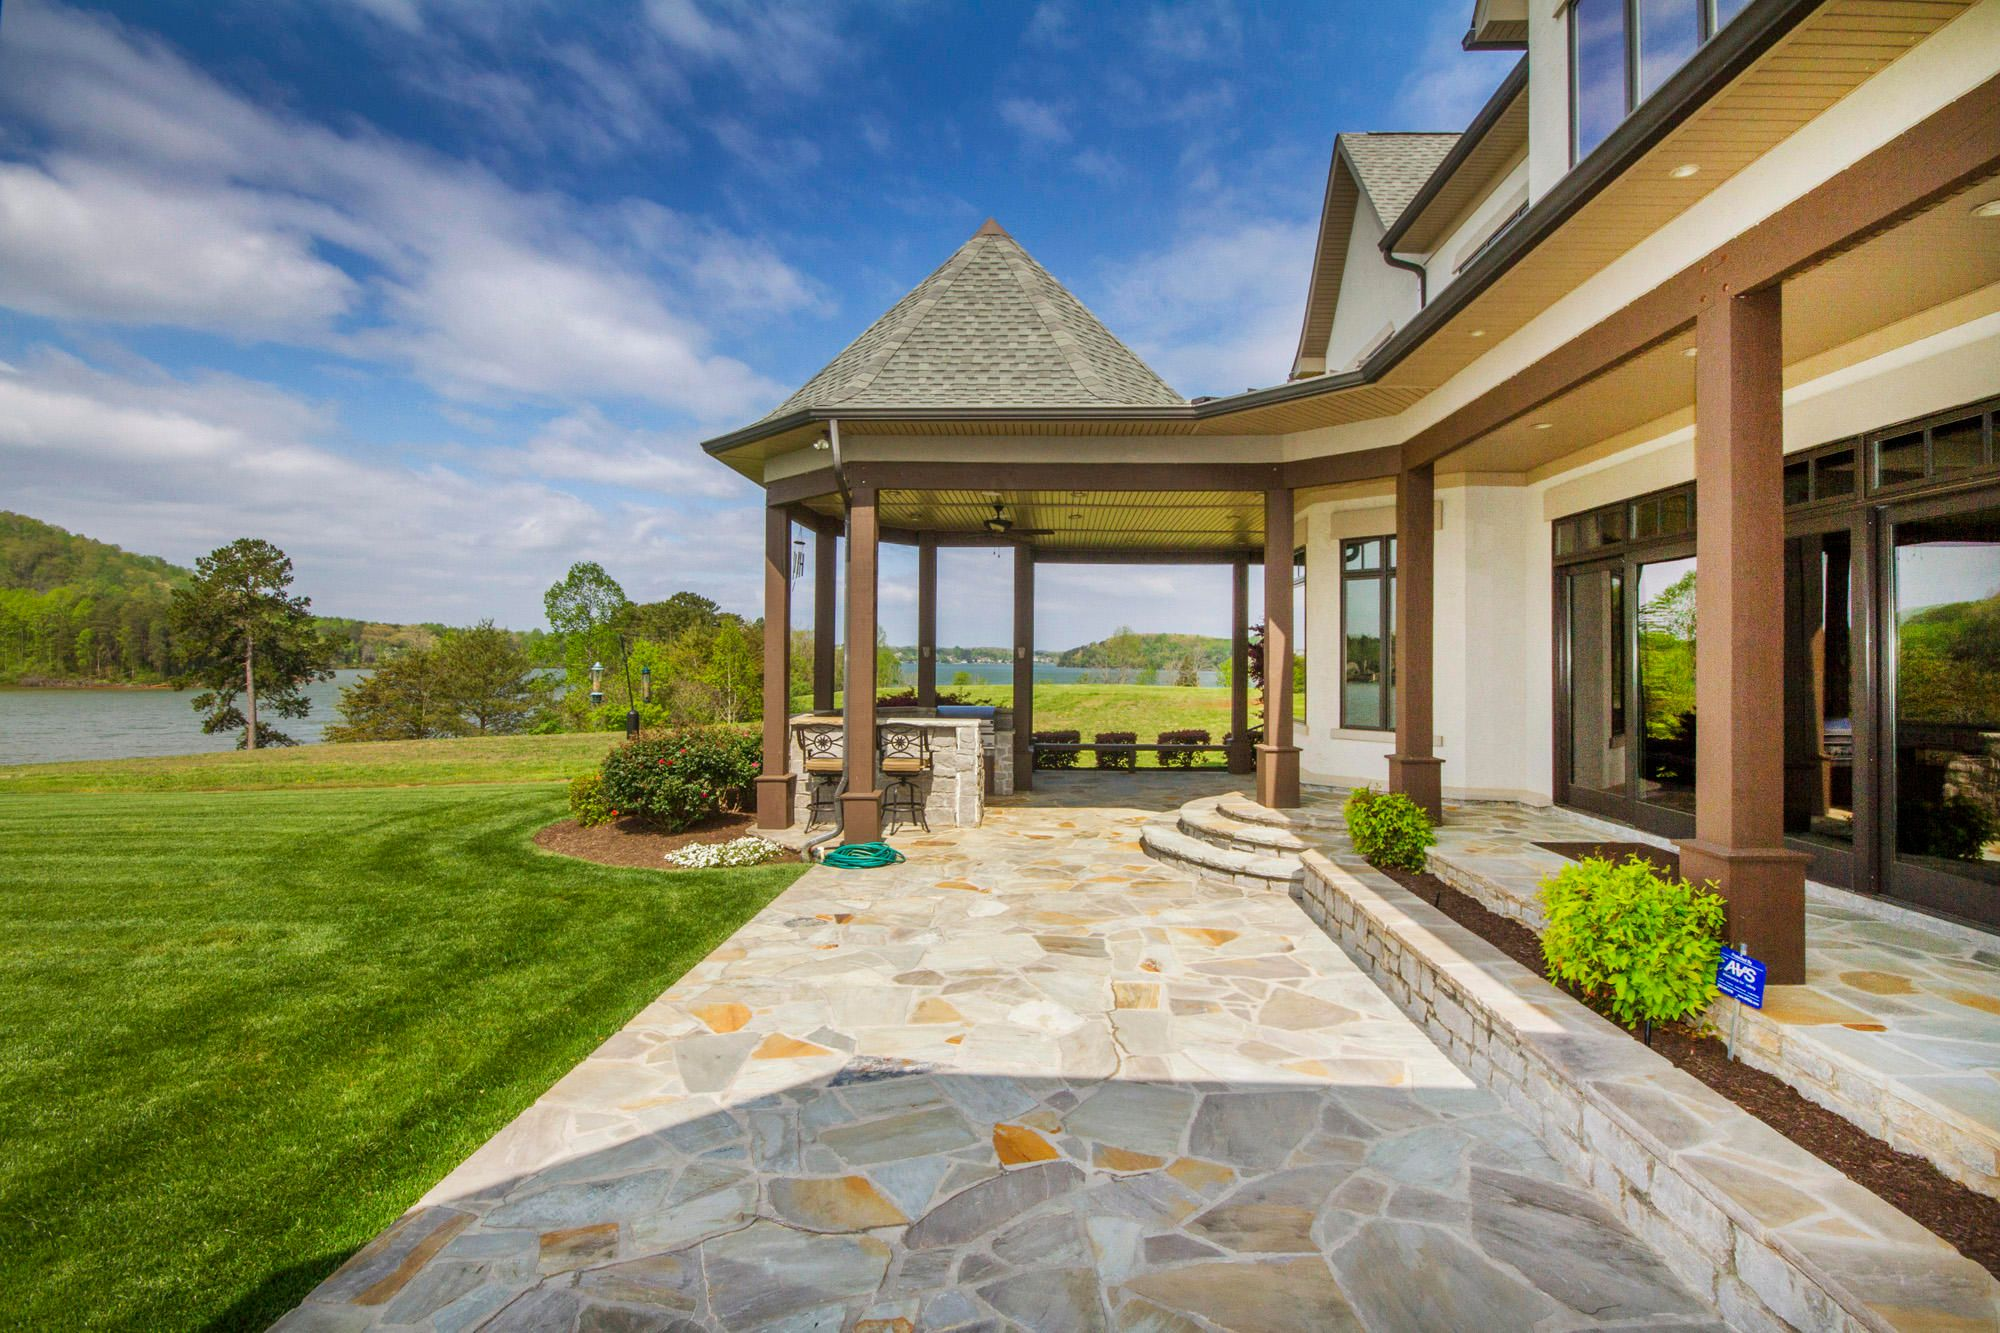 1,450' of Outdoor Entertaining Space!